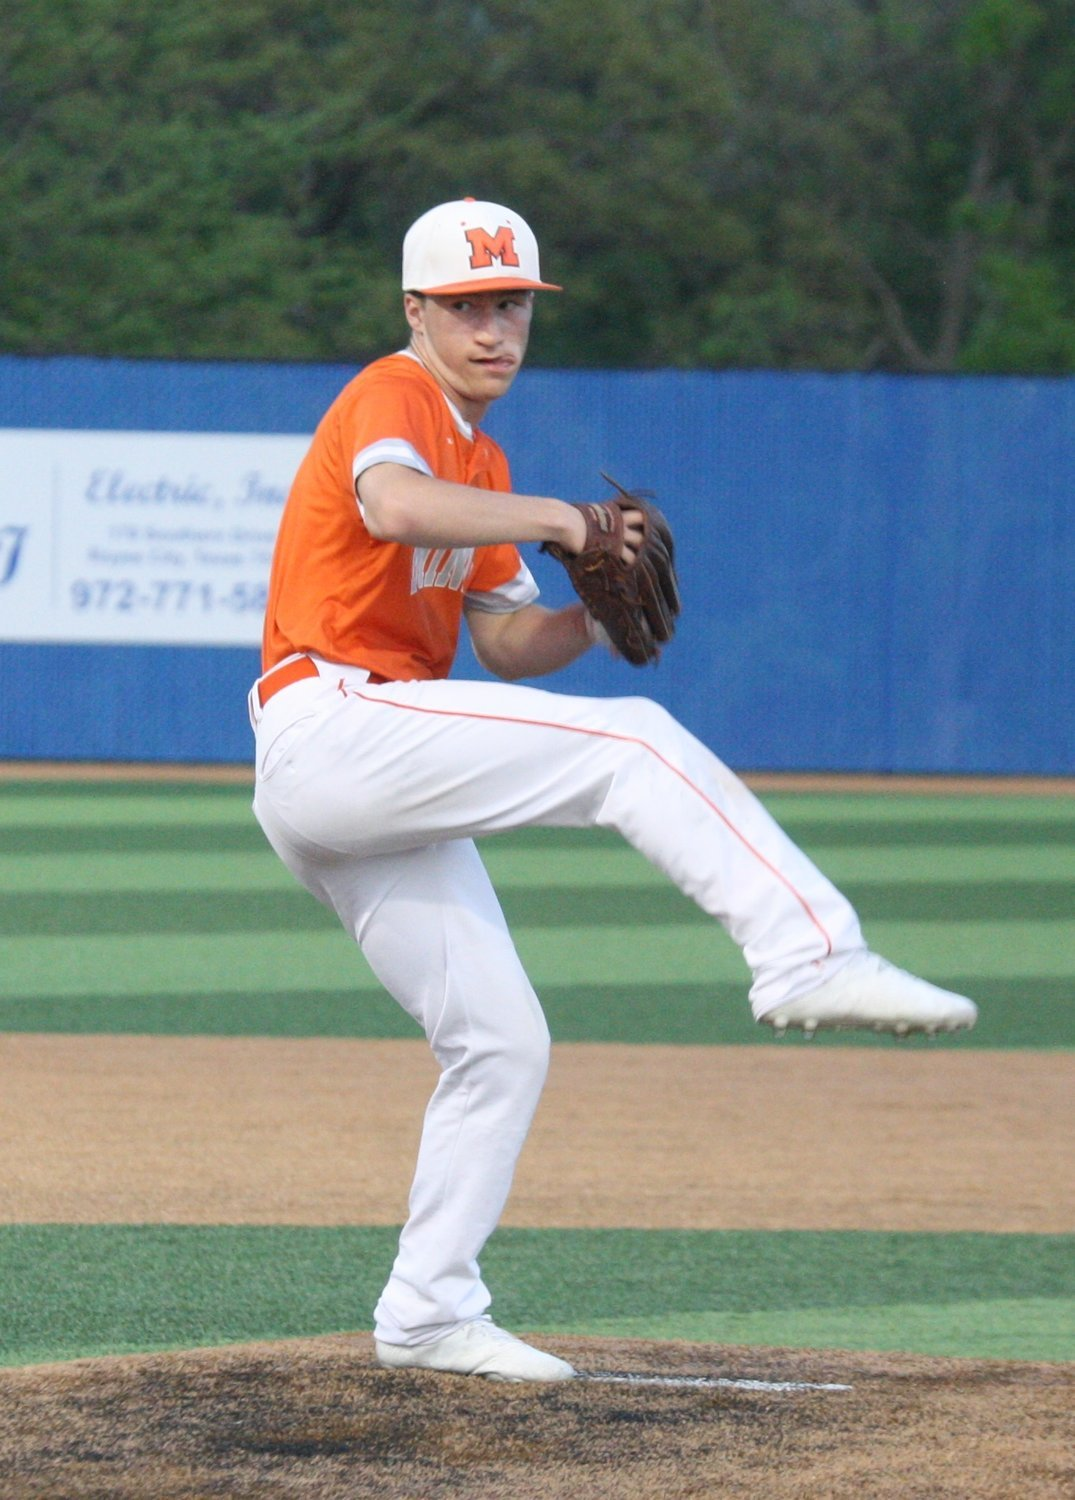 Mineola's Cole Castleberry fires a pitch last spring for the Yellowjackets. He threw a perfect game on June 1 in the opening game of the American Sporting events (ASE) summer baseball season. (Monitor file photo)